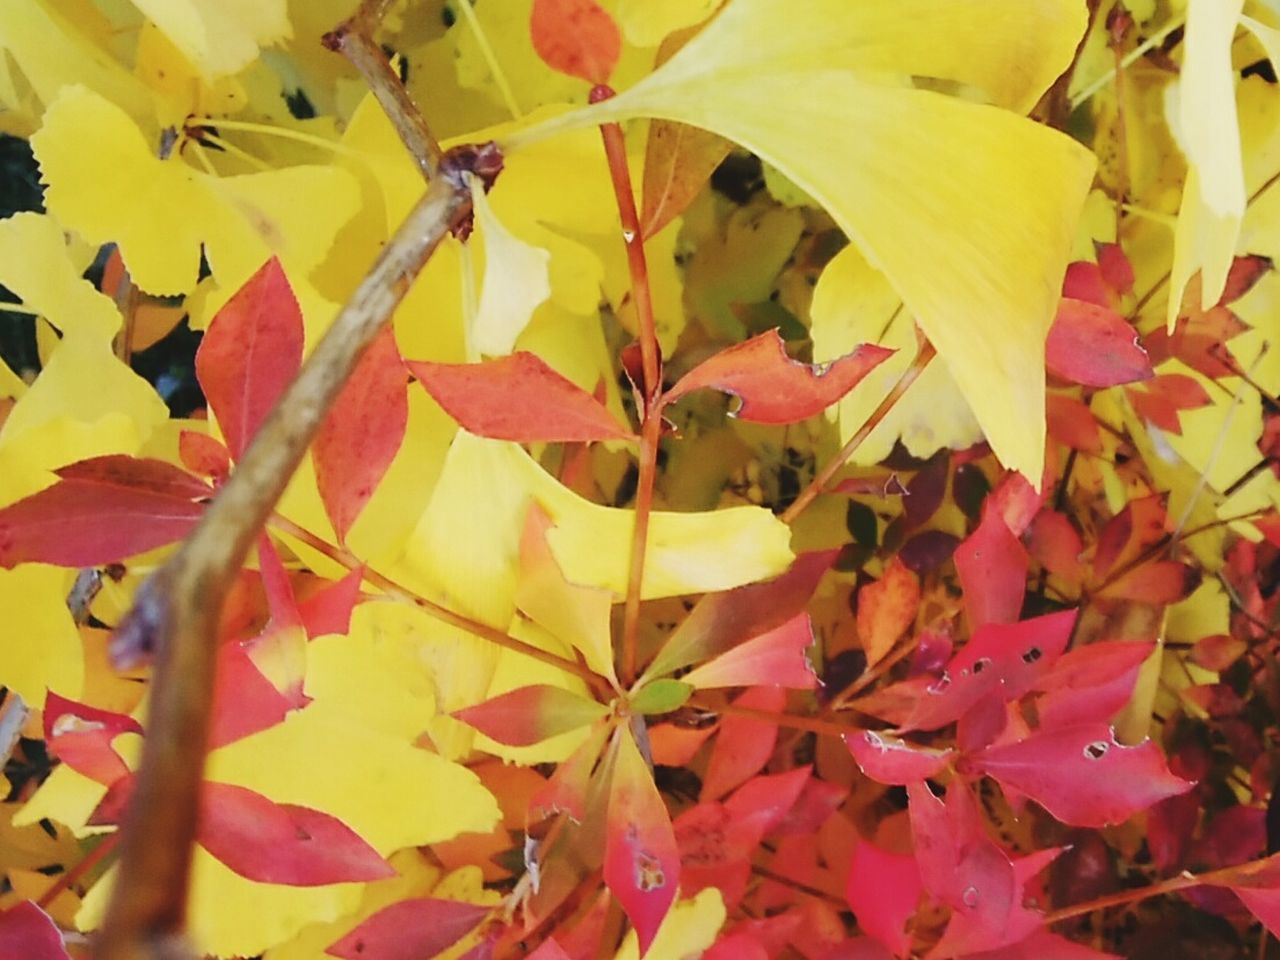 Yellow Close-up No People Autumn Leaf Multi Colored Backgrounds Day Outdoors Fragility Nature Beauty In Nature